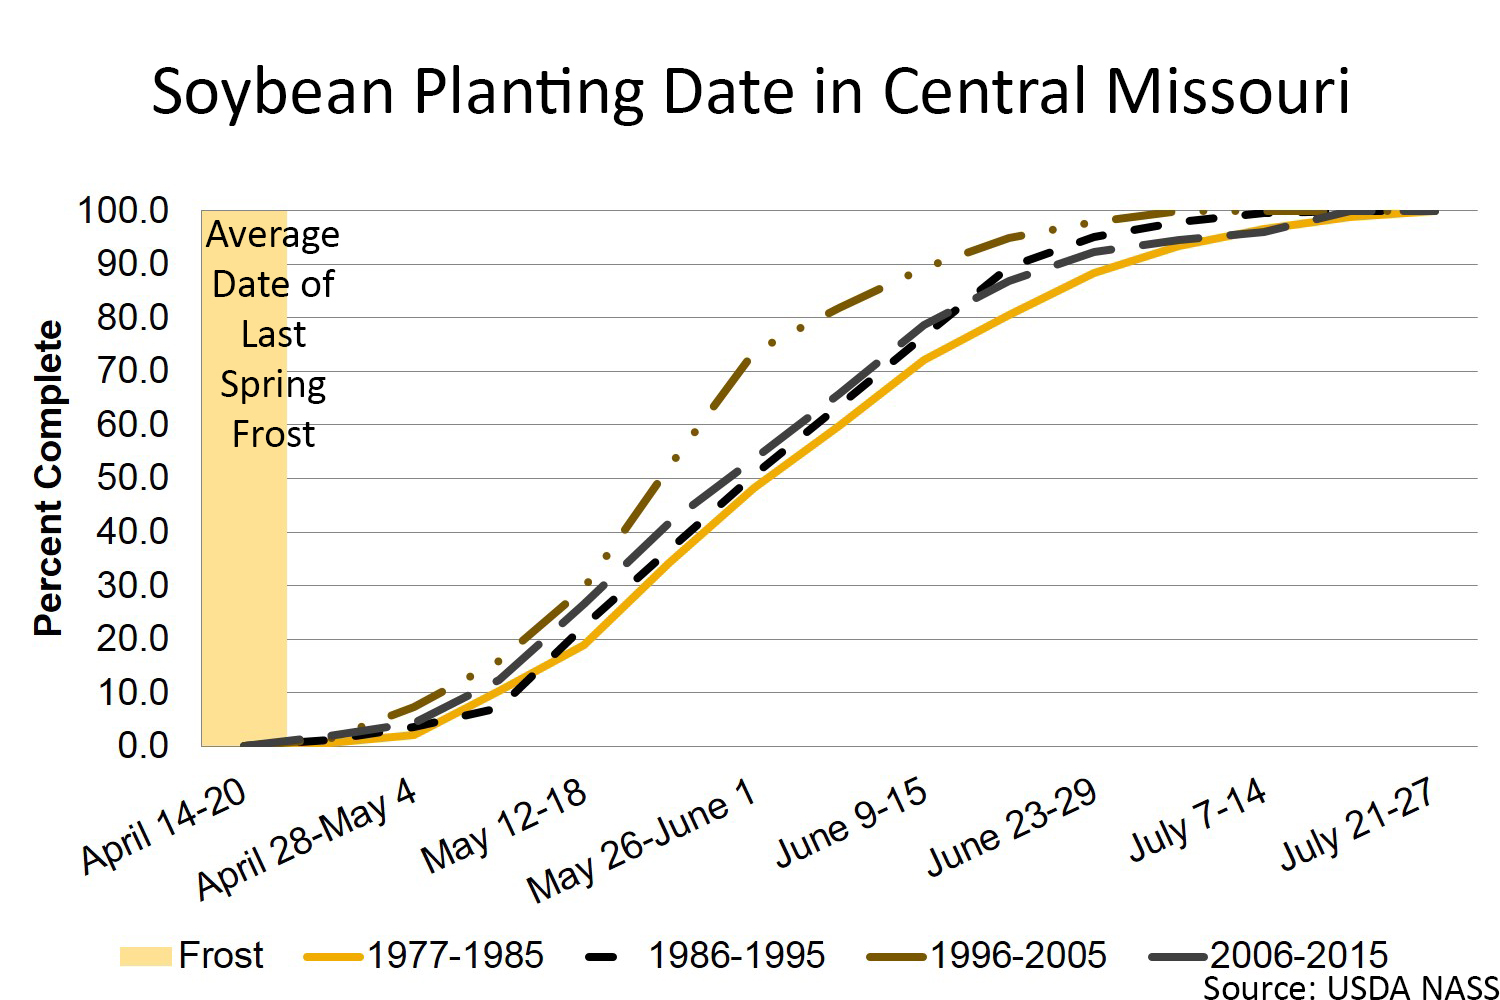 Soybean planting date in Central Missouri chart